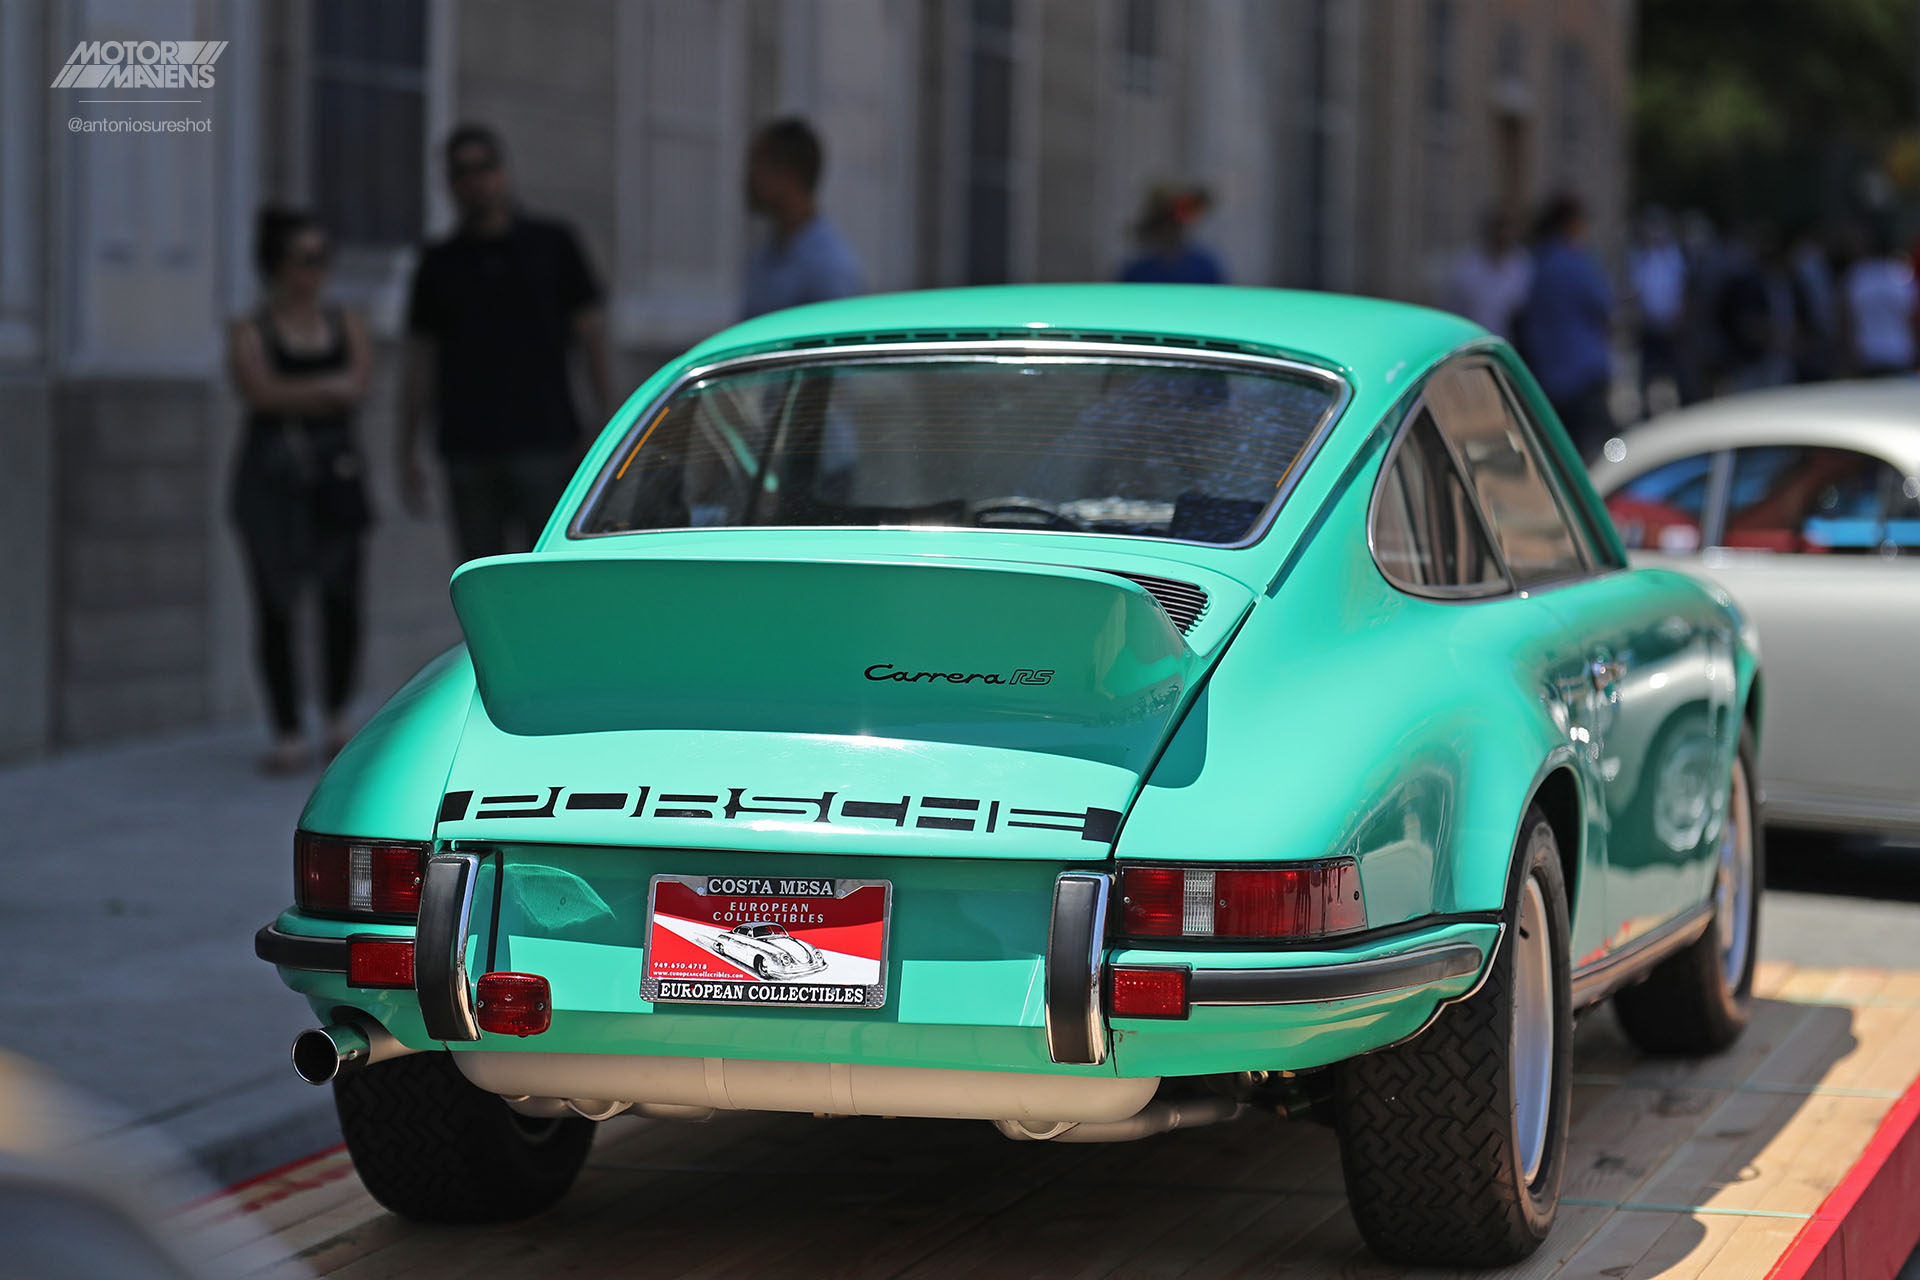 Luftgekühlt, Porsche, Air Cooled 911, 1973 911, Carrera RS